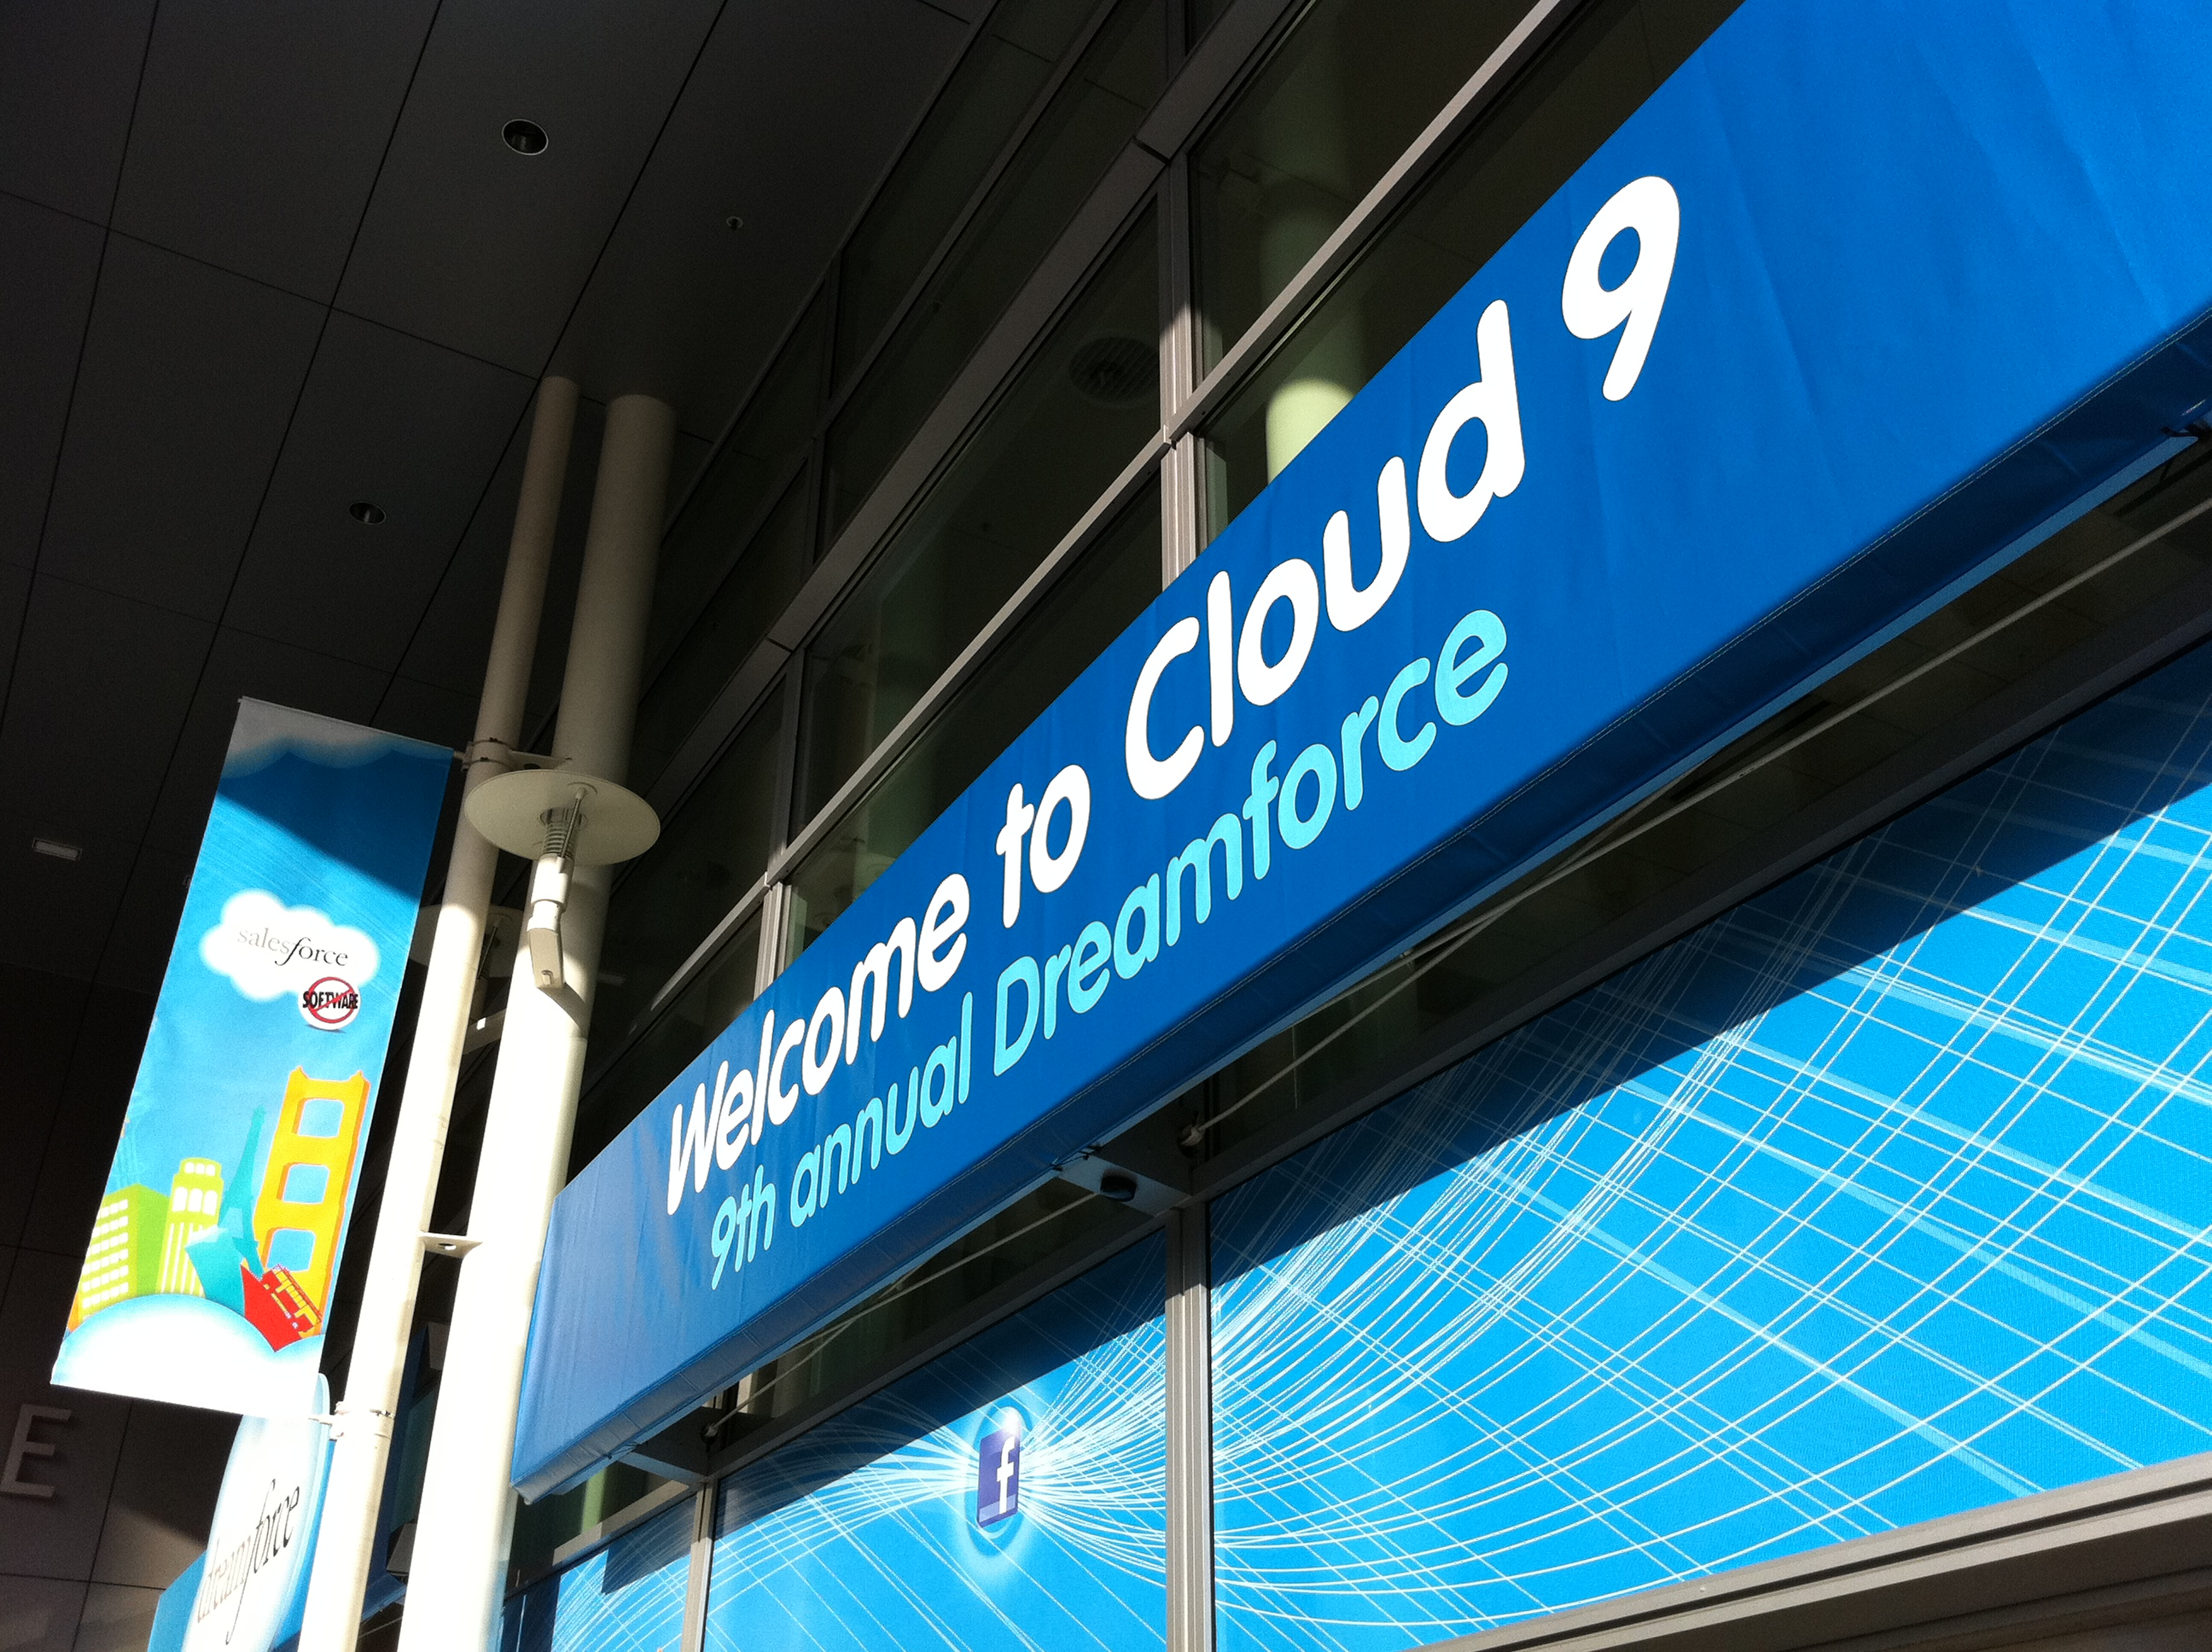 Dreamforce 11: Live Blogging the Benioff Keynote